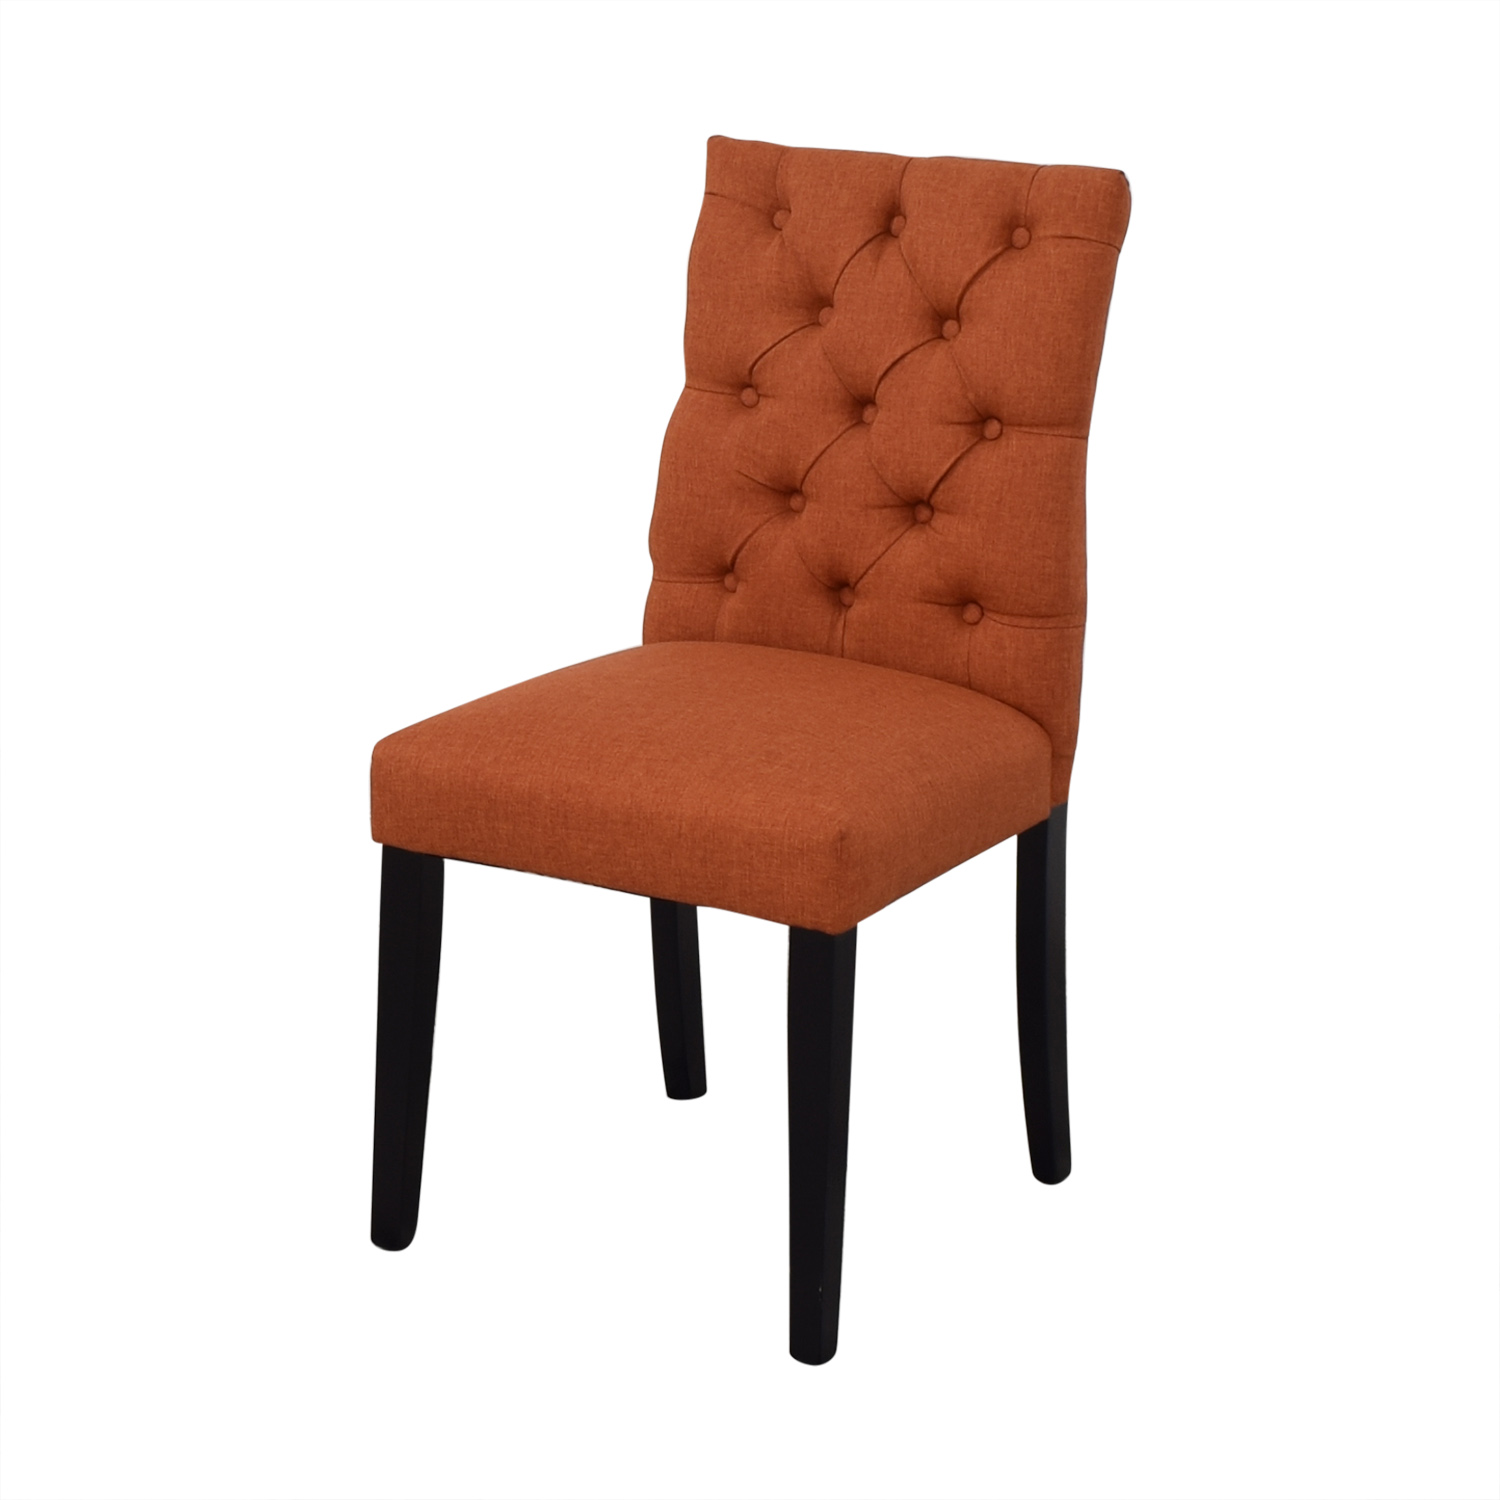 shop Modway Confer Dining Chairs Modway Chairs